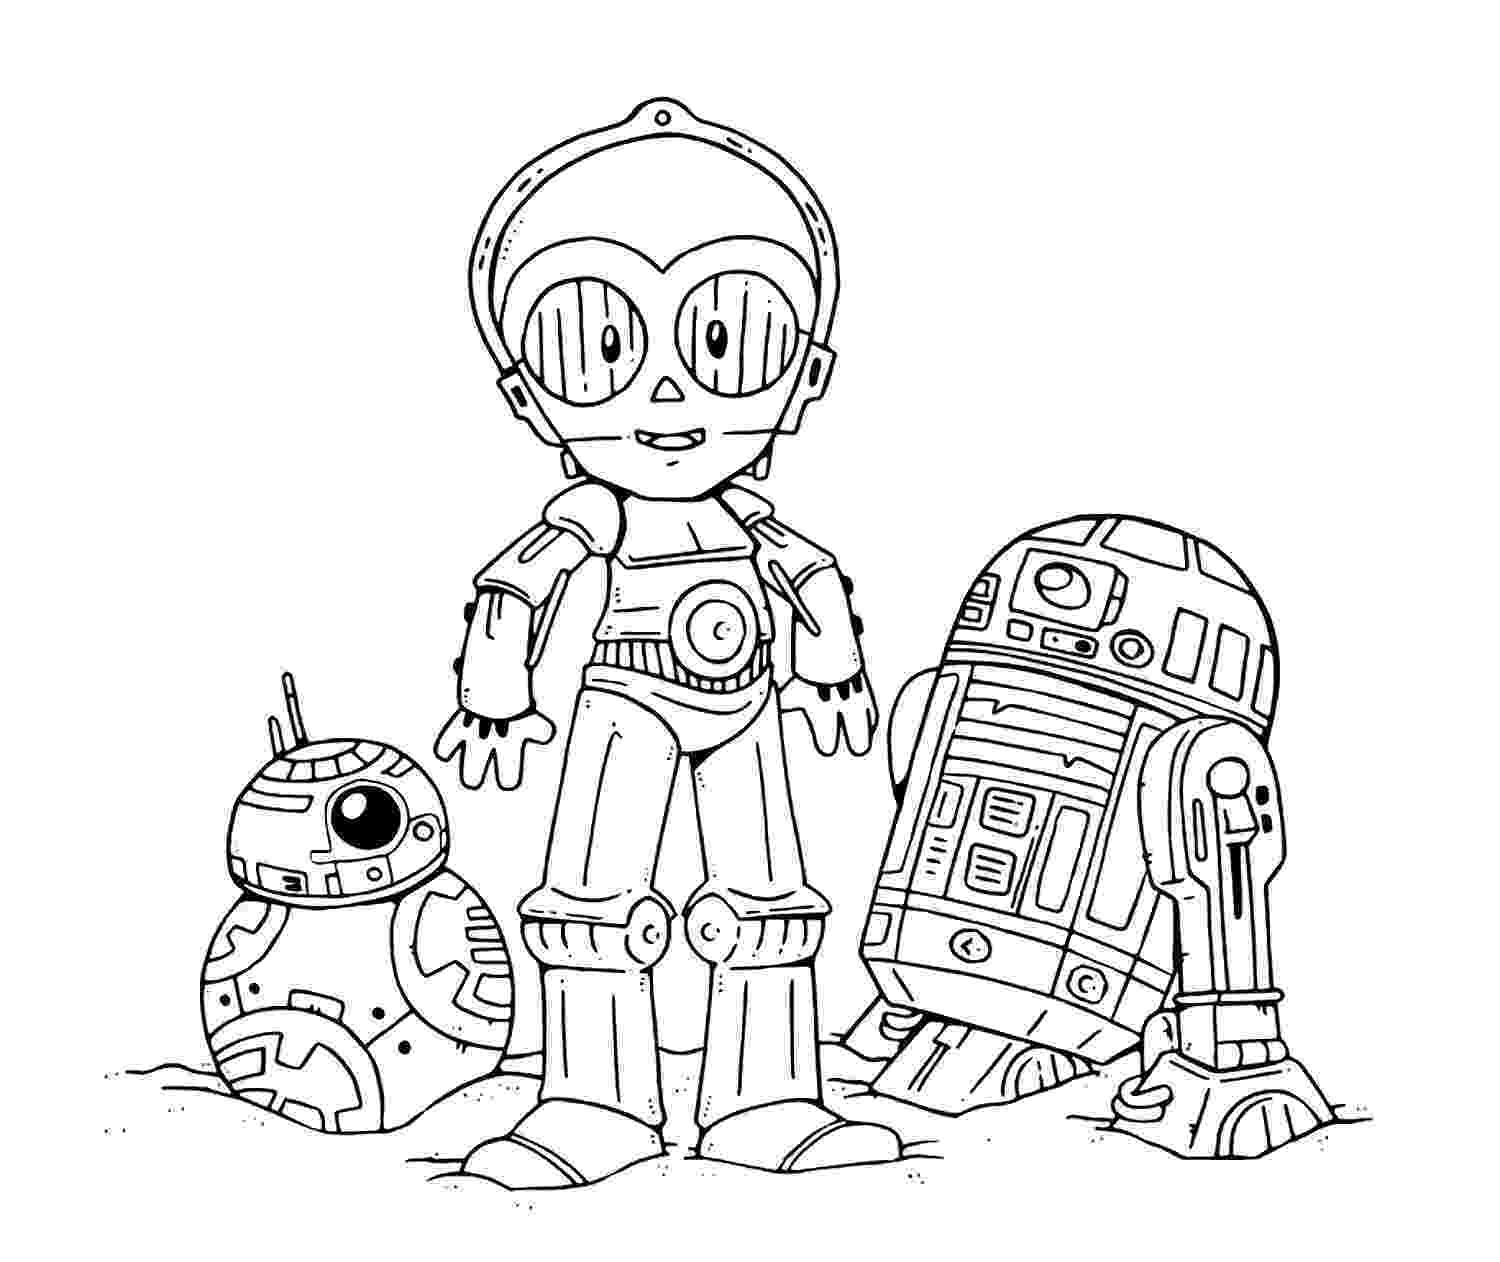 coloring pages printable star wars top 25 free printable star wars coloring pages online printable coloring star pages wars